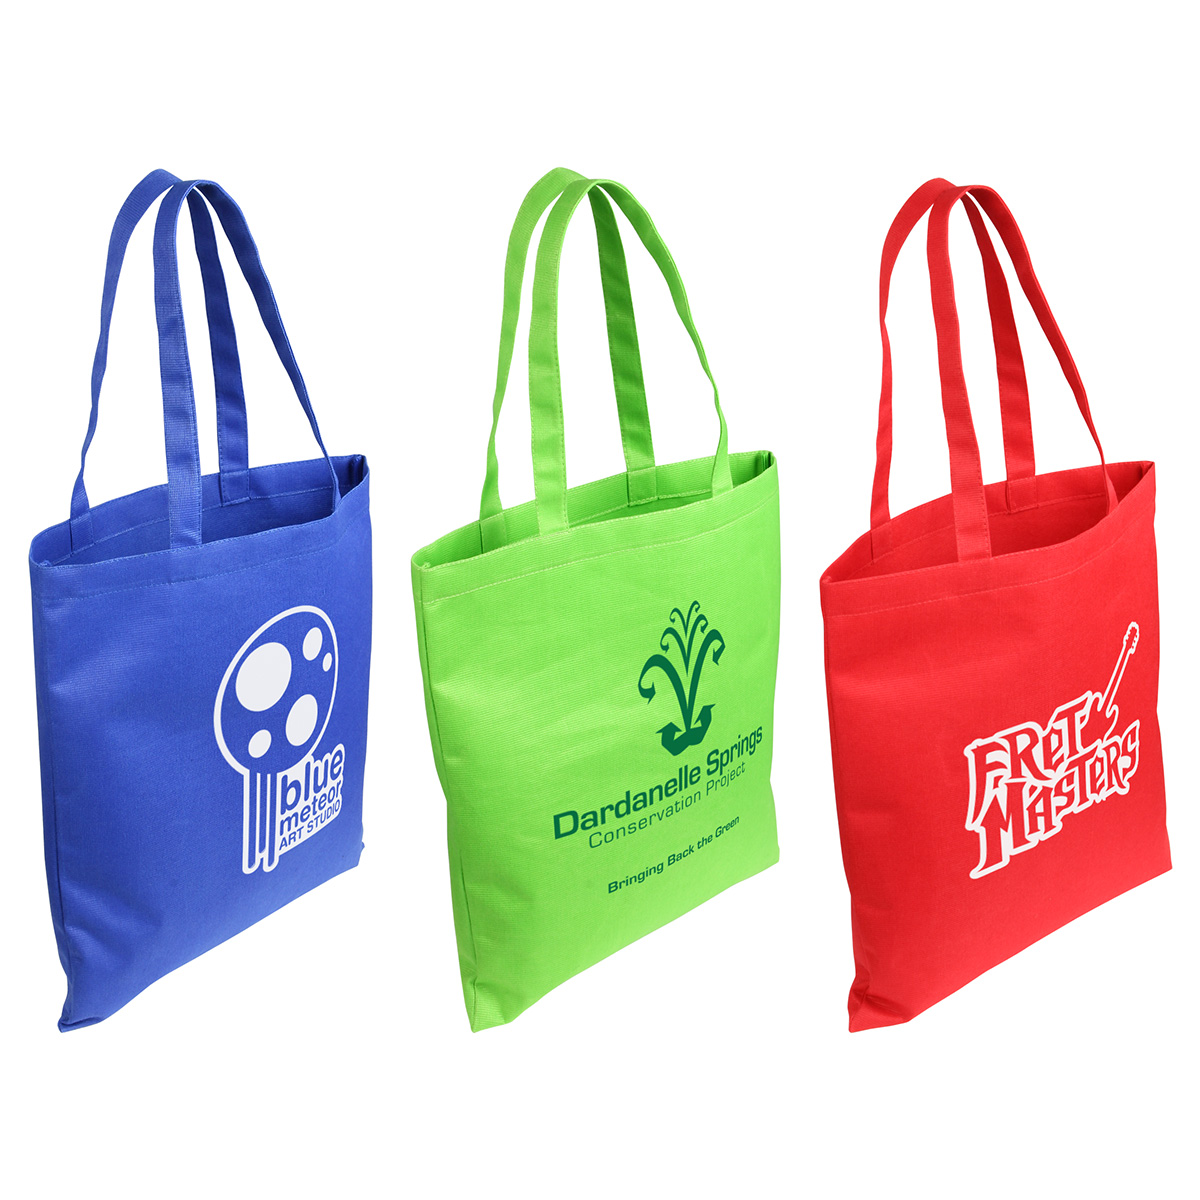 Gulf Breeze Recycled P.E.T. Tote Bag, WBA-BR10, 1 Colour Imprint